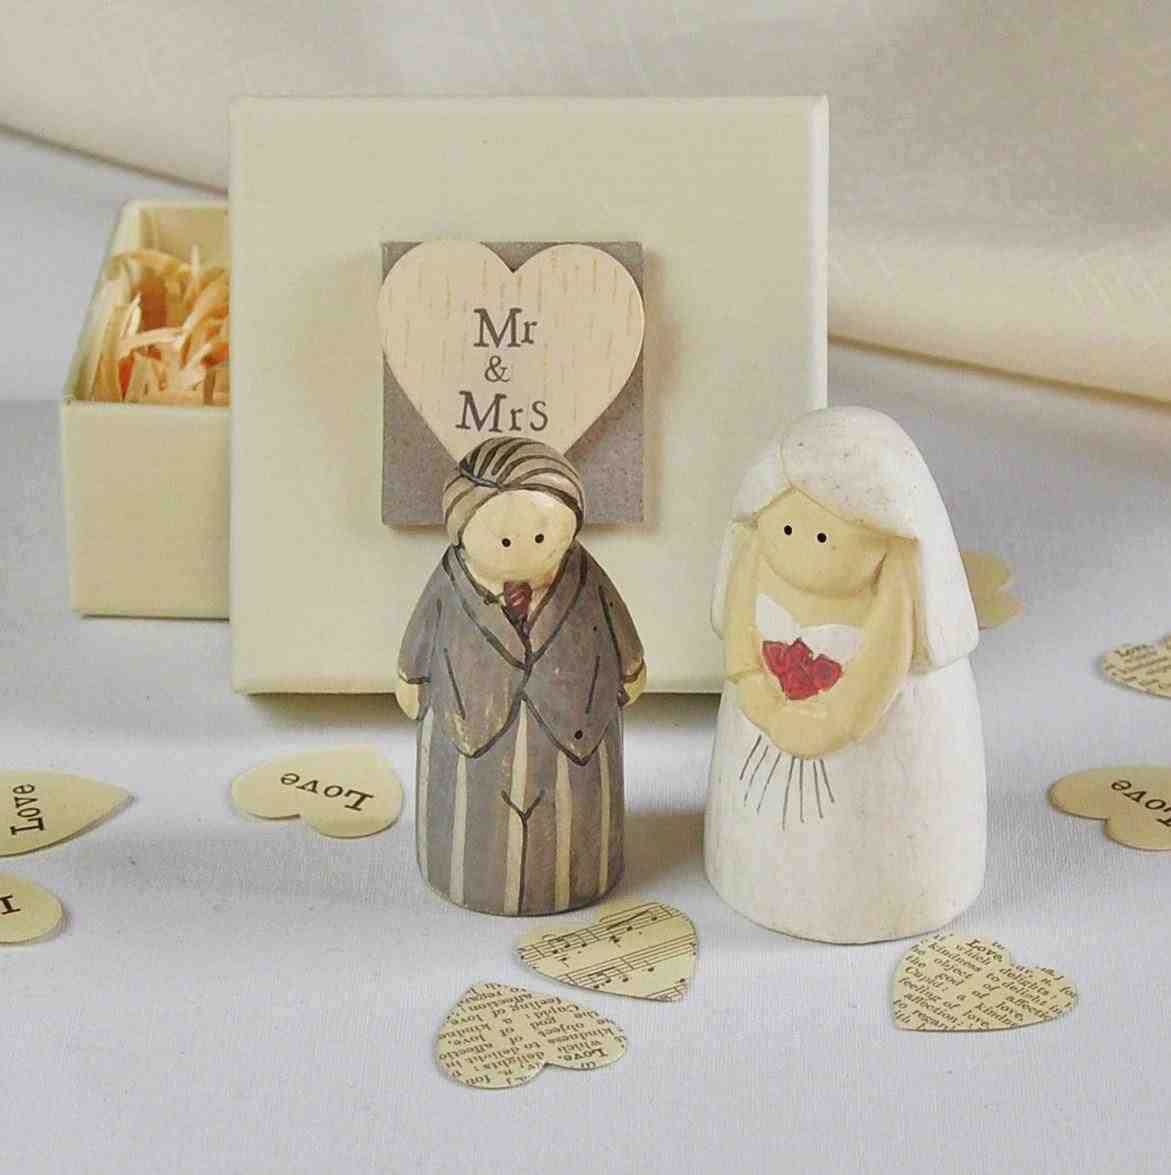 Wedding Gift To Groom From Bride Ideas : Wedding Gift Ideas For Bride From Groom - Wedding and Bridal ...